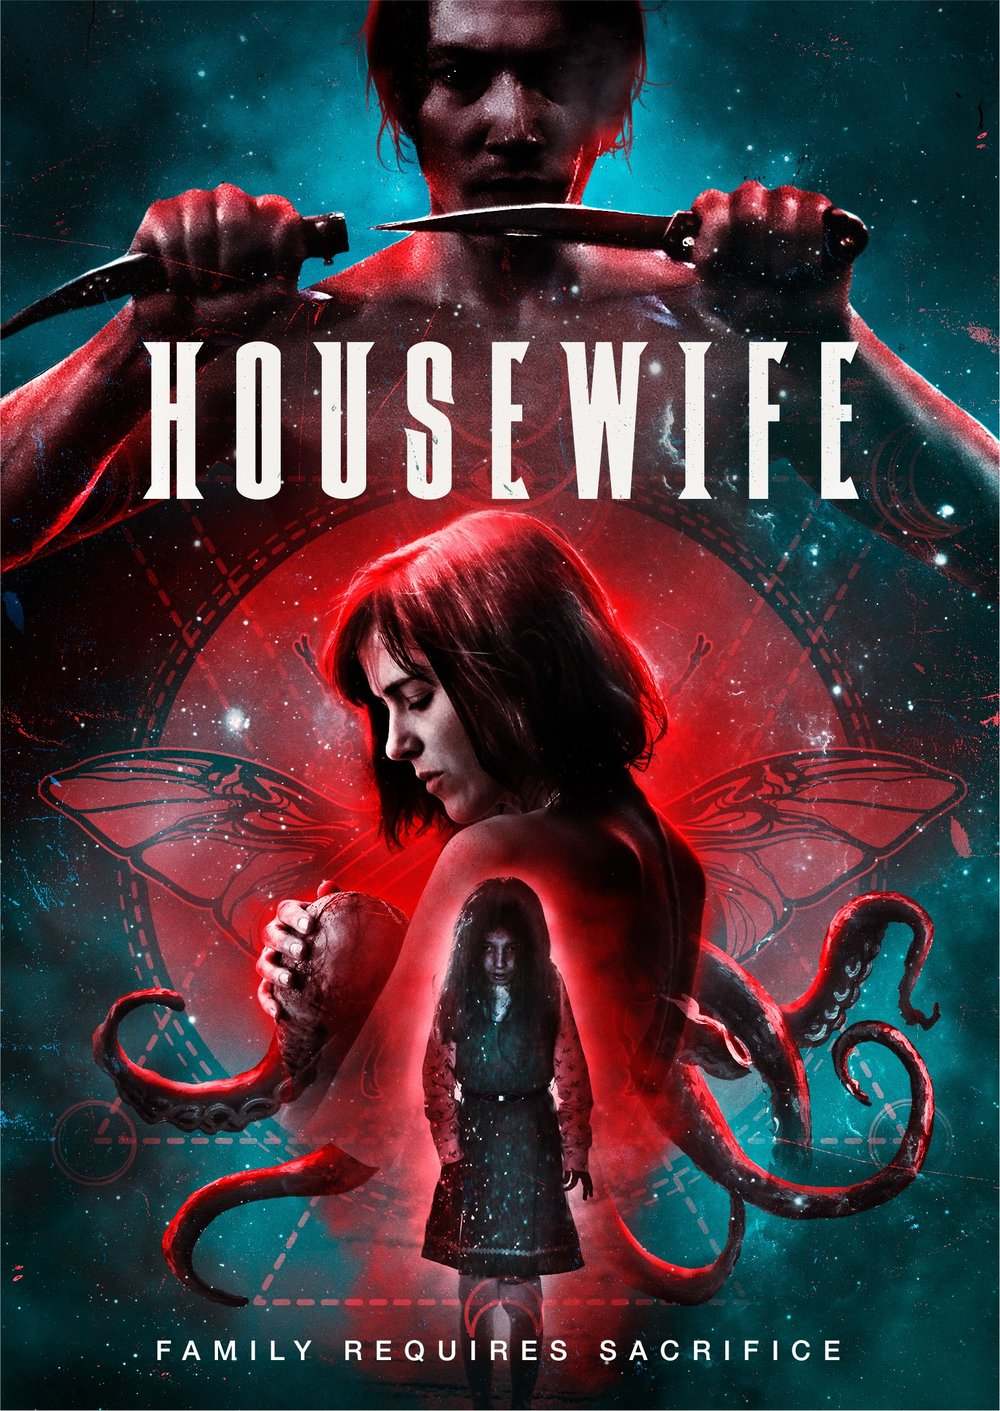 Housewife poster.jpg